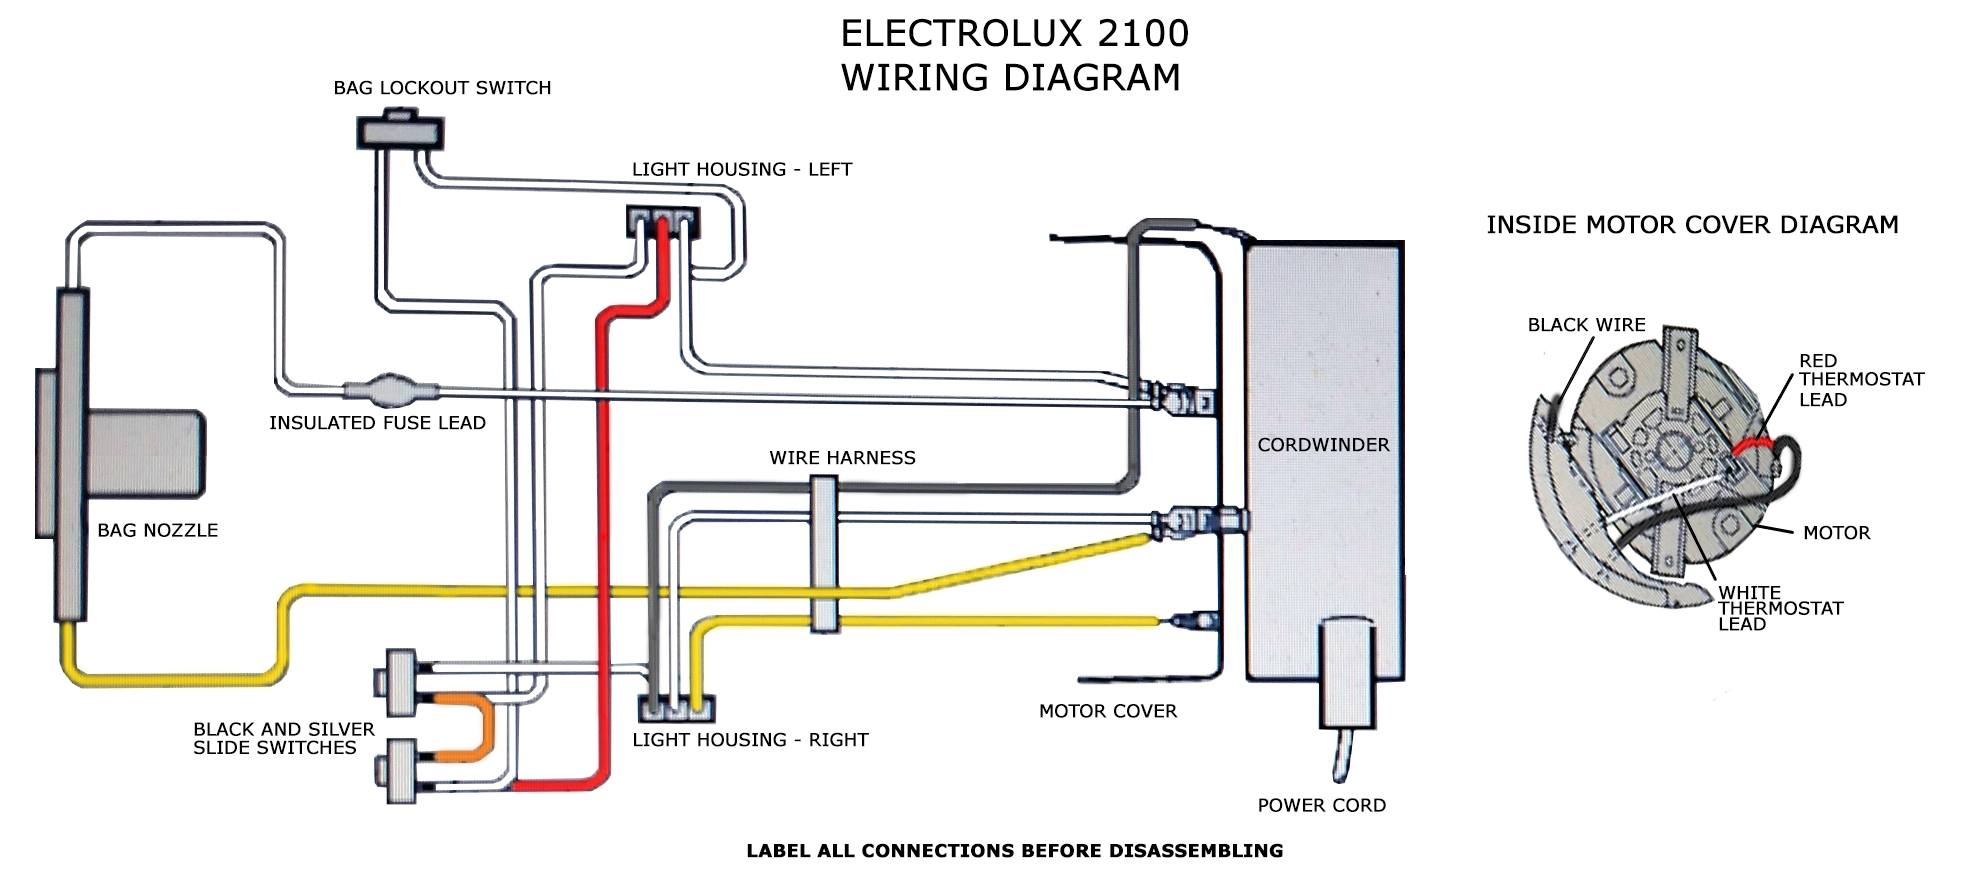 2100 wiring diagram kirby shampooer diagram bosch carpet shampooers \u2022 wiring diagram  at gsmx.co